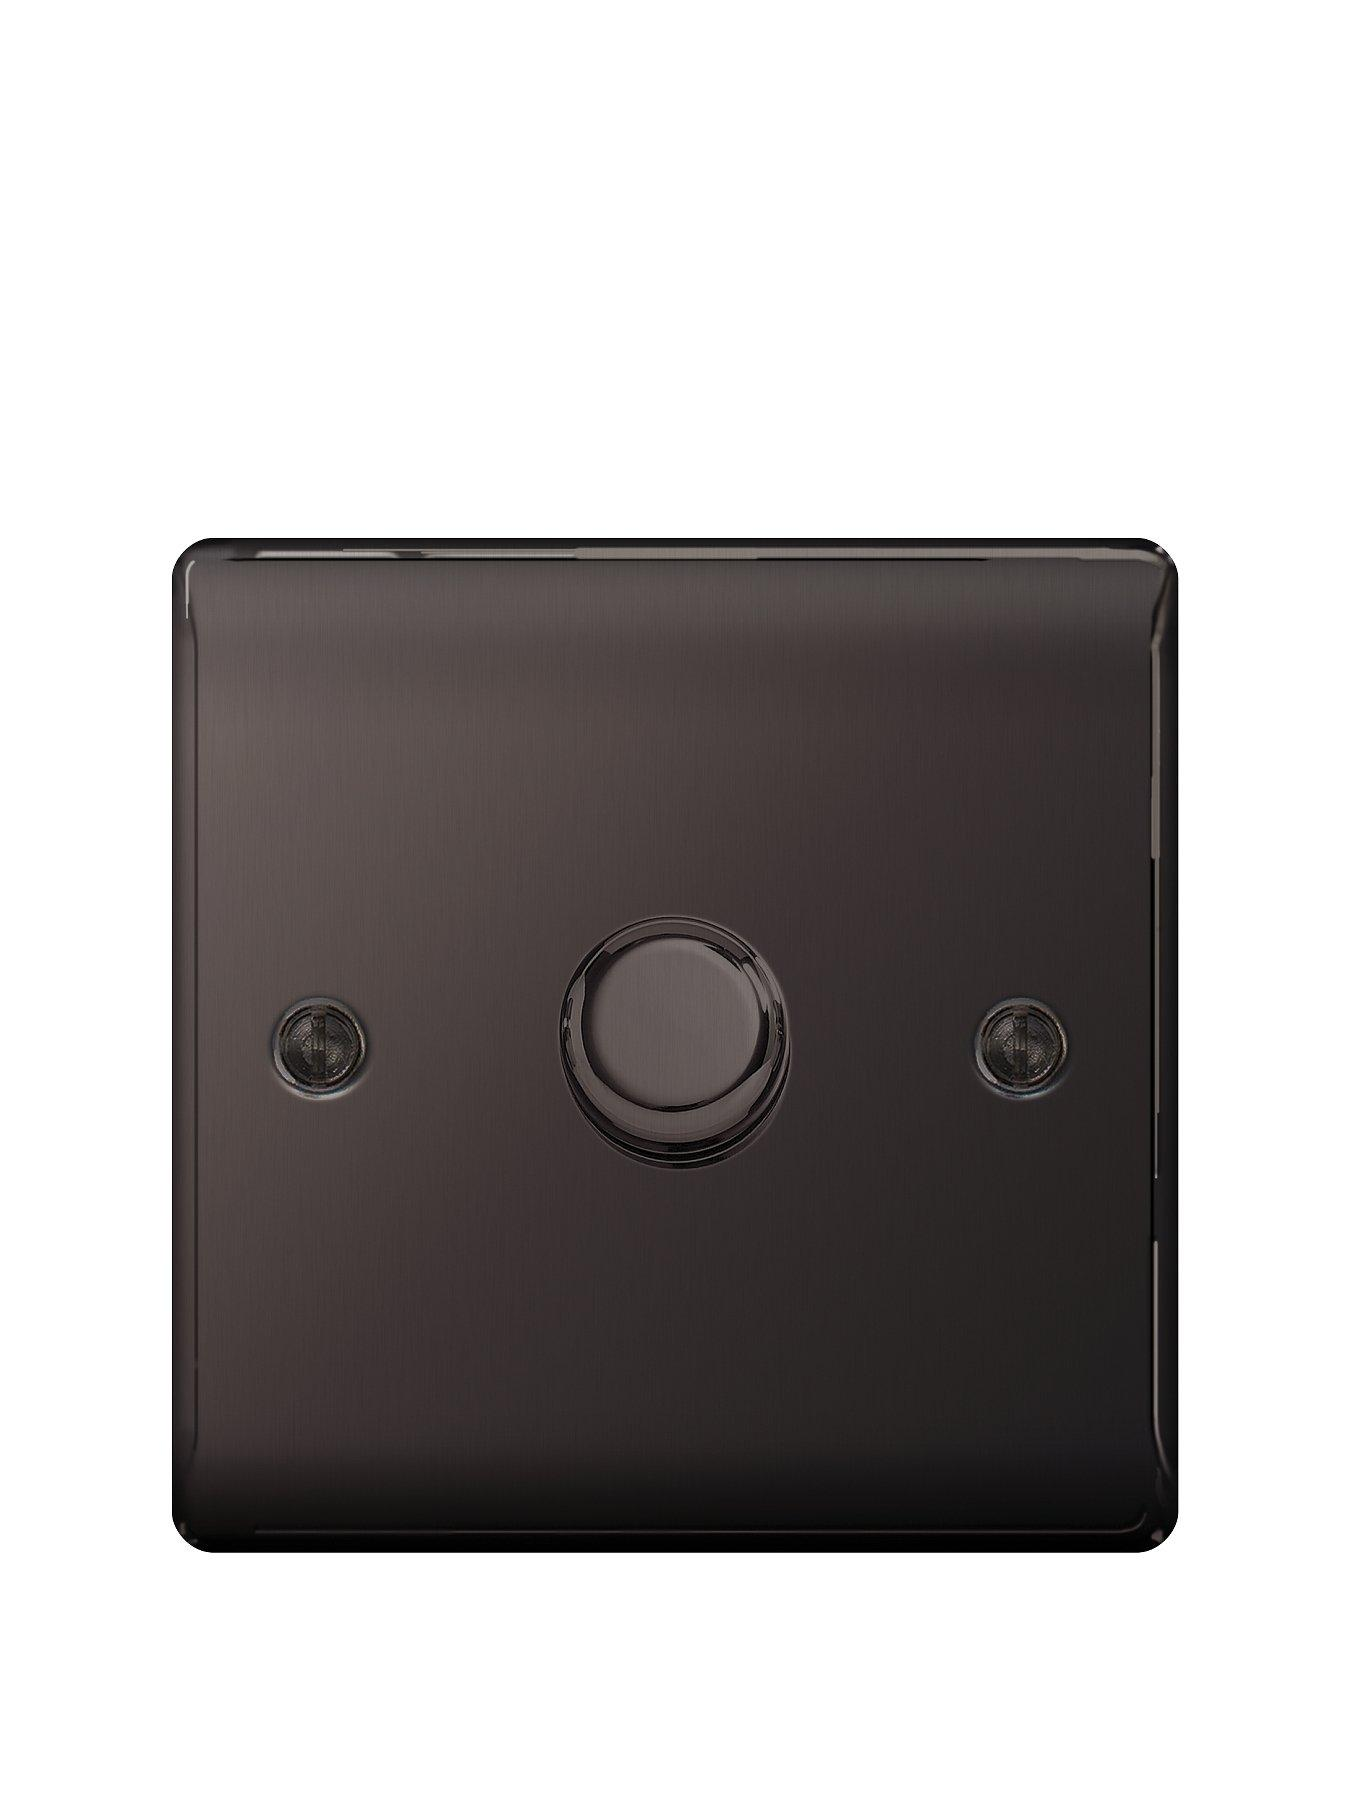 Compare prices for British General Electrical Raised 1G Dimmer Switch - Black Nickel